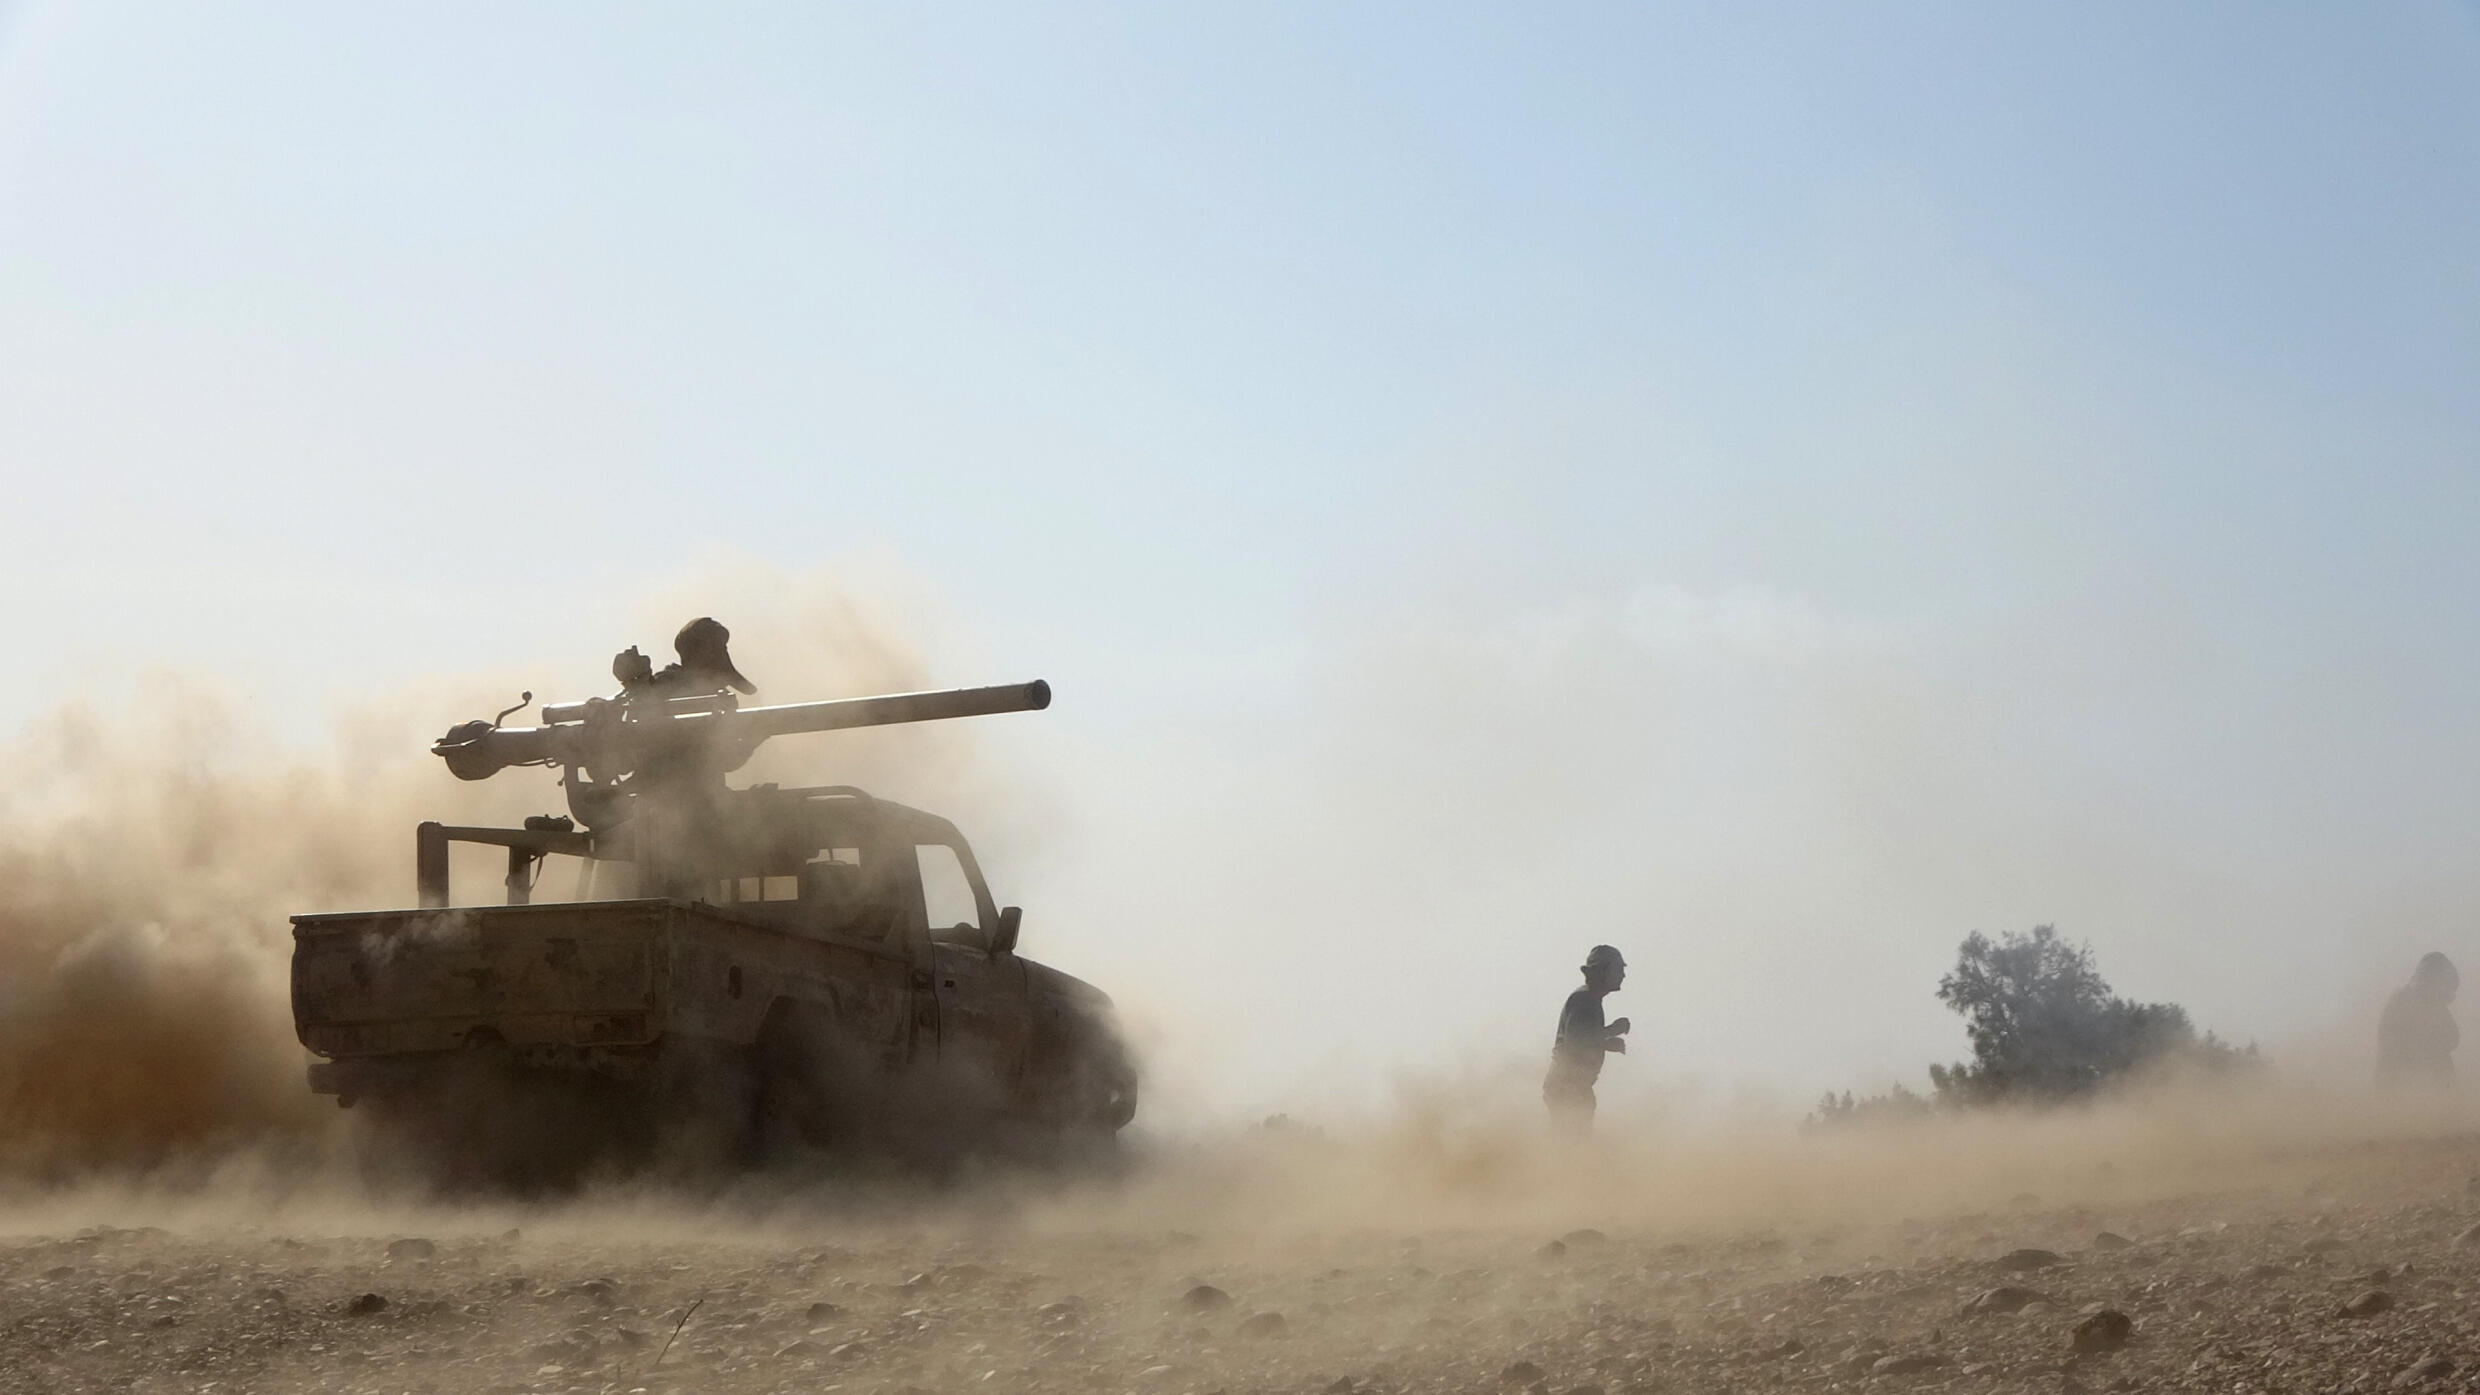 Saudi-backed Yemeni government troops earlier this month  engaged in clashes with Huthi rebels pushing an offensive on oil-rich Marib, some 120 kilometres (75 miles) east of Yemen's rebel-held capital Sanaa